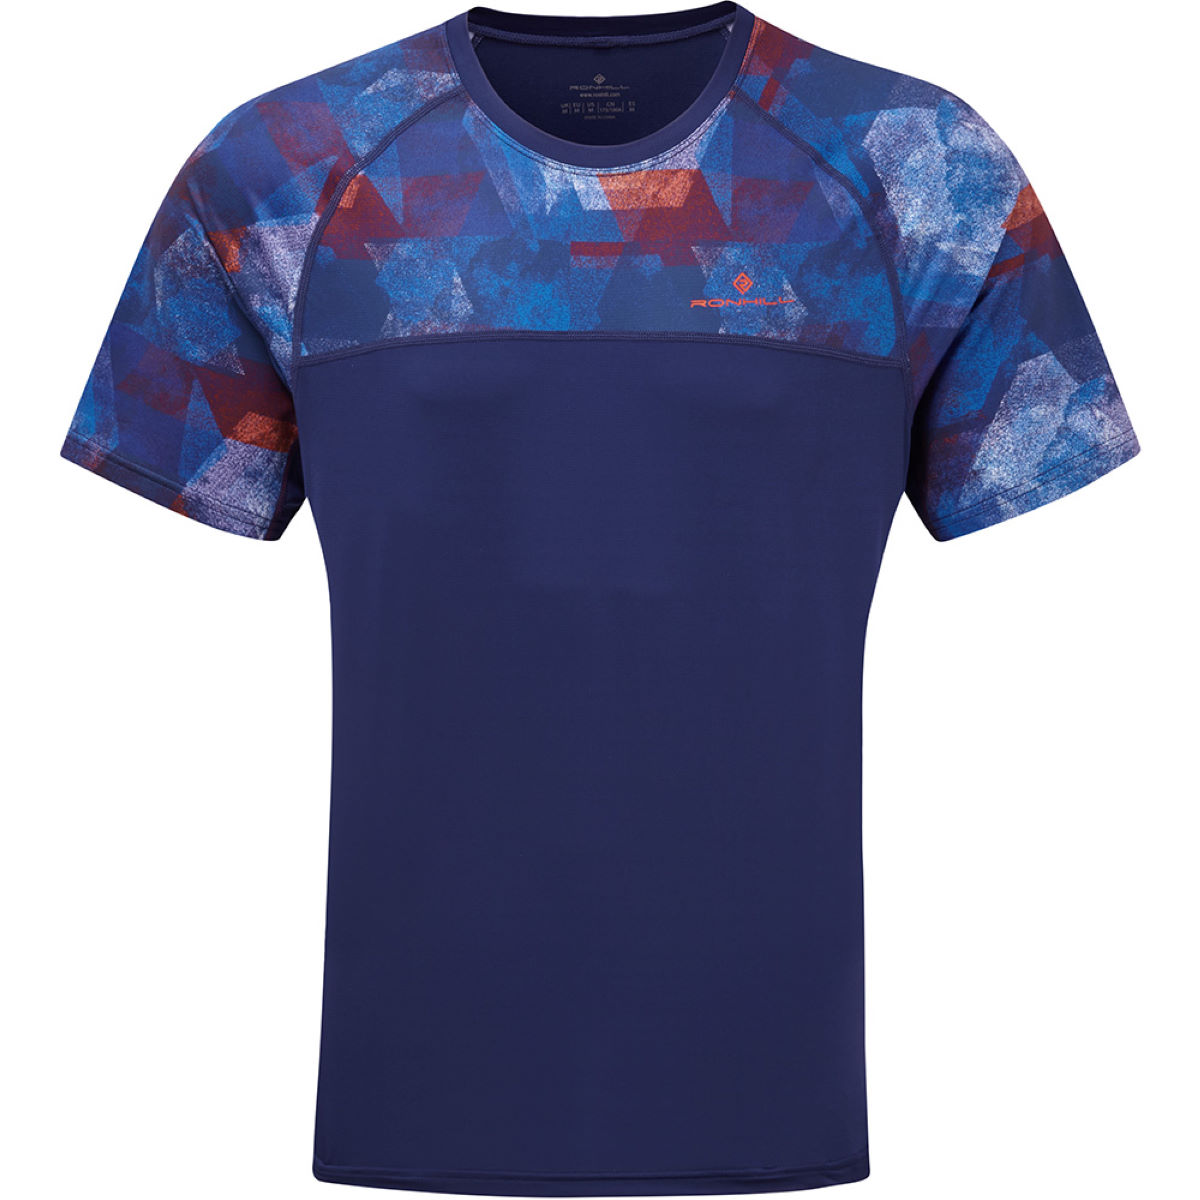 Ronhill Ronhill Stride Revive Short Sleeve Tee   Short Sleeve Running Tops